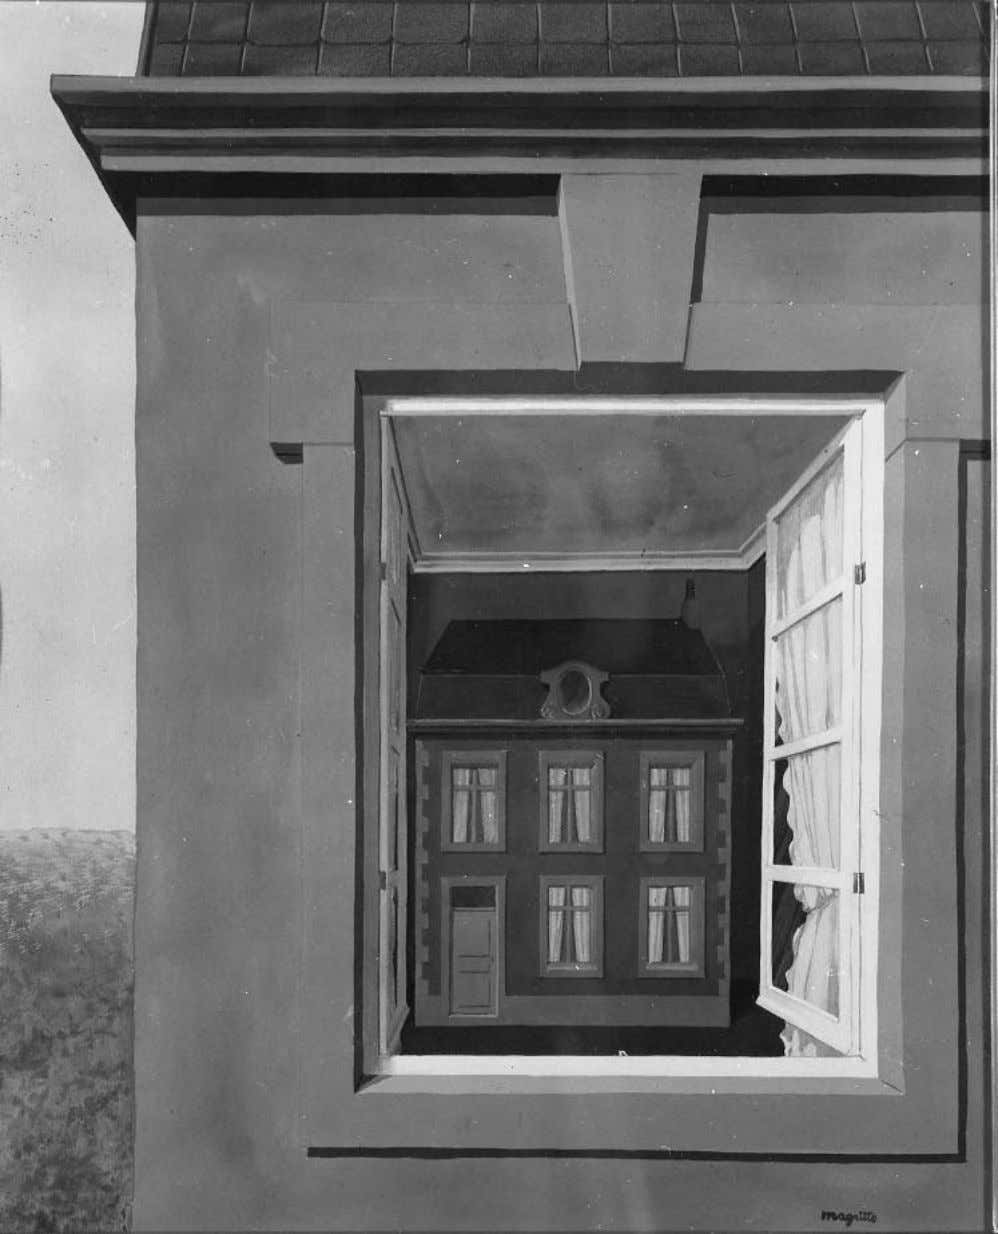 Memoirs of Surrealism Rene´ Magritte, Eloge de la dialectique (In Praise of Dialectics), 1935; photo: Lauros-Giraudon,